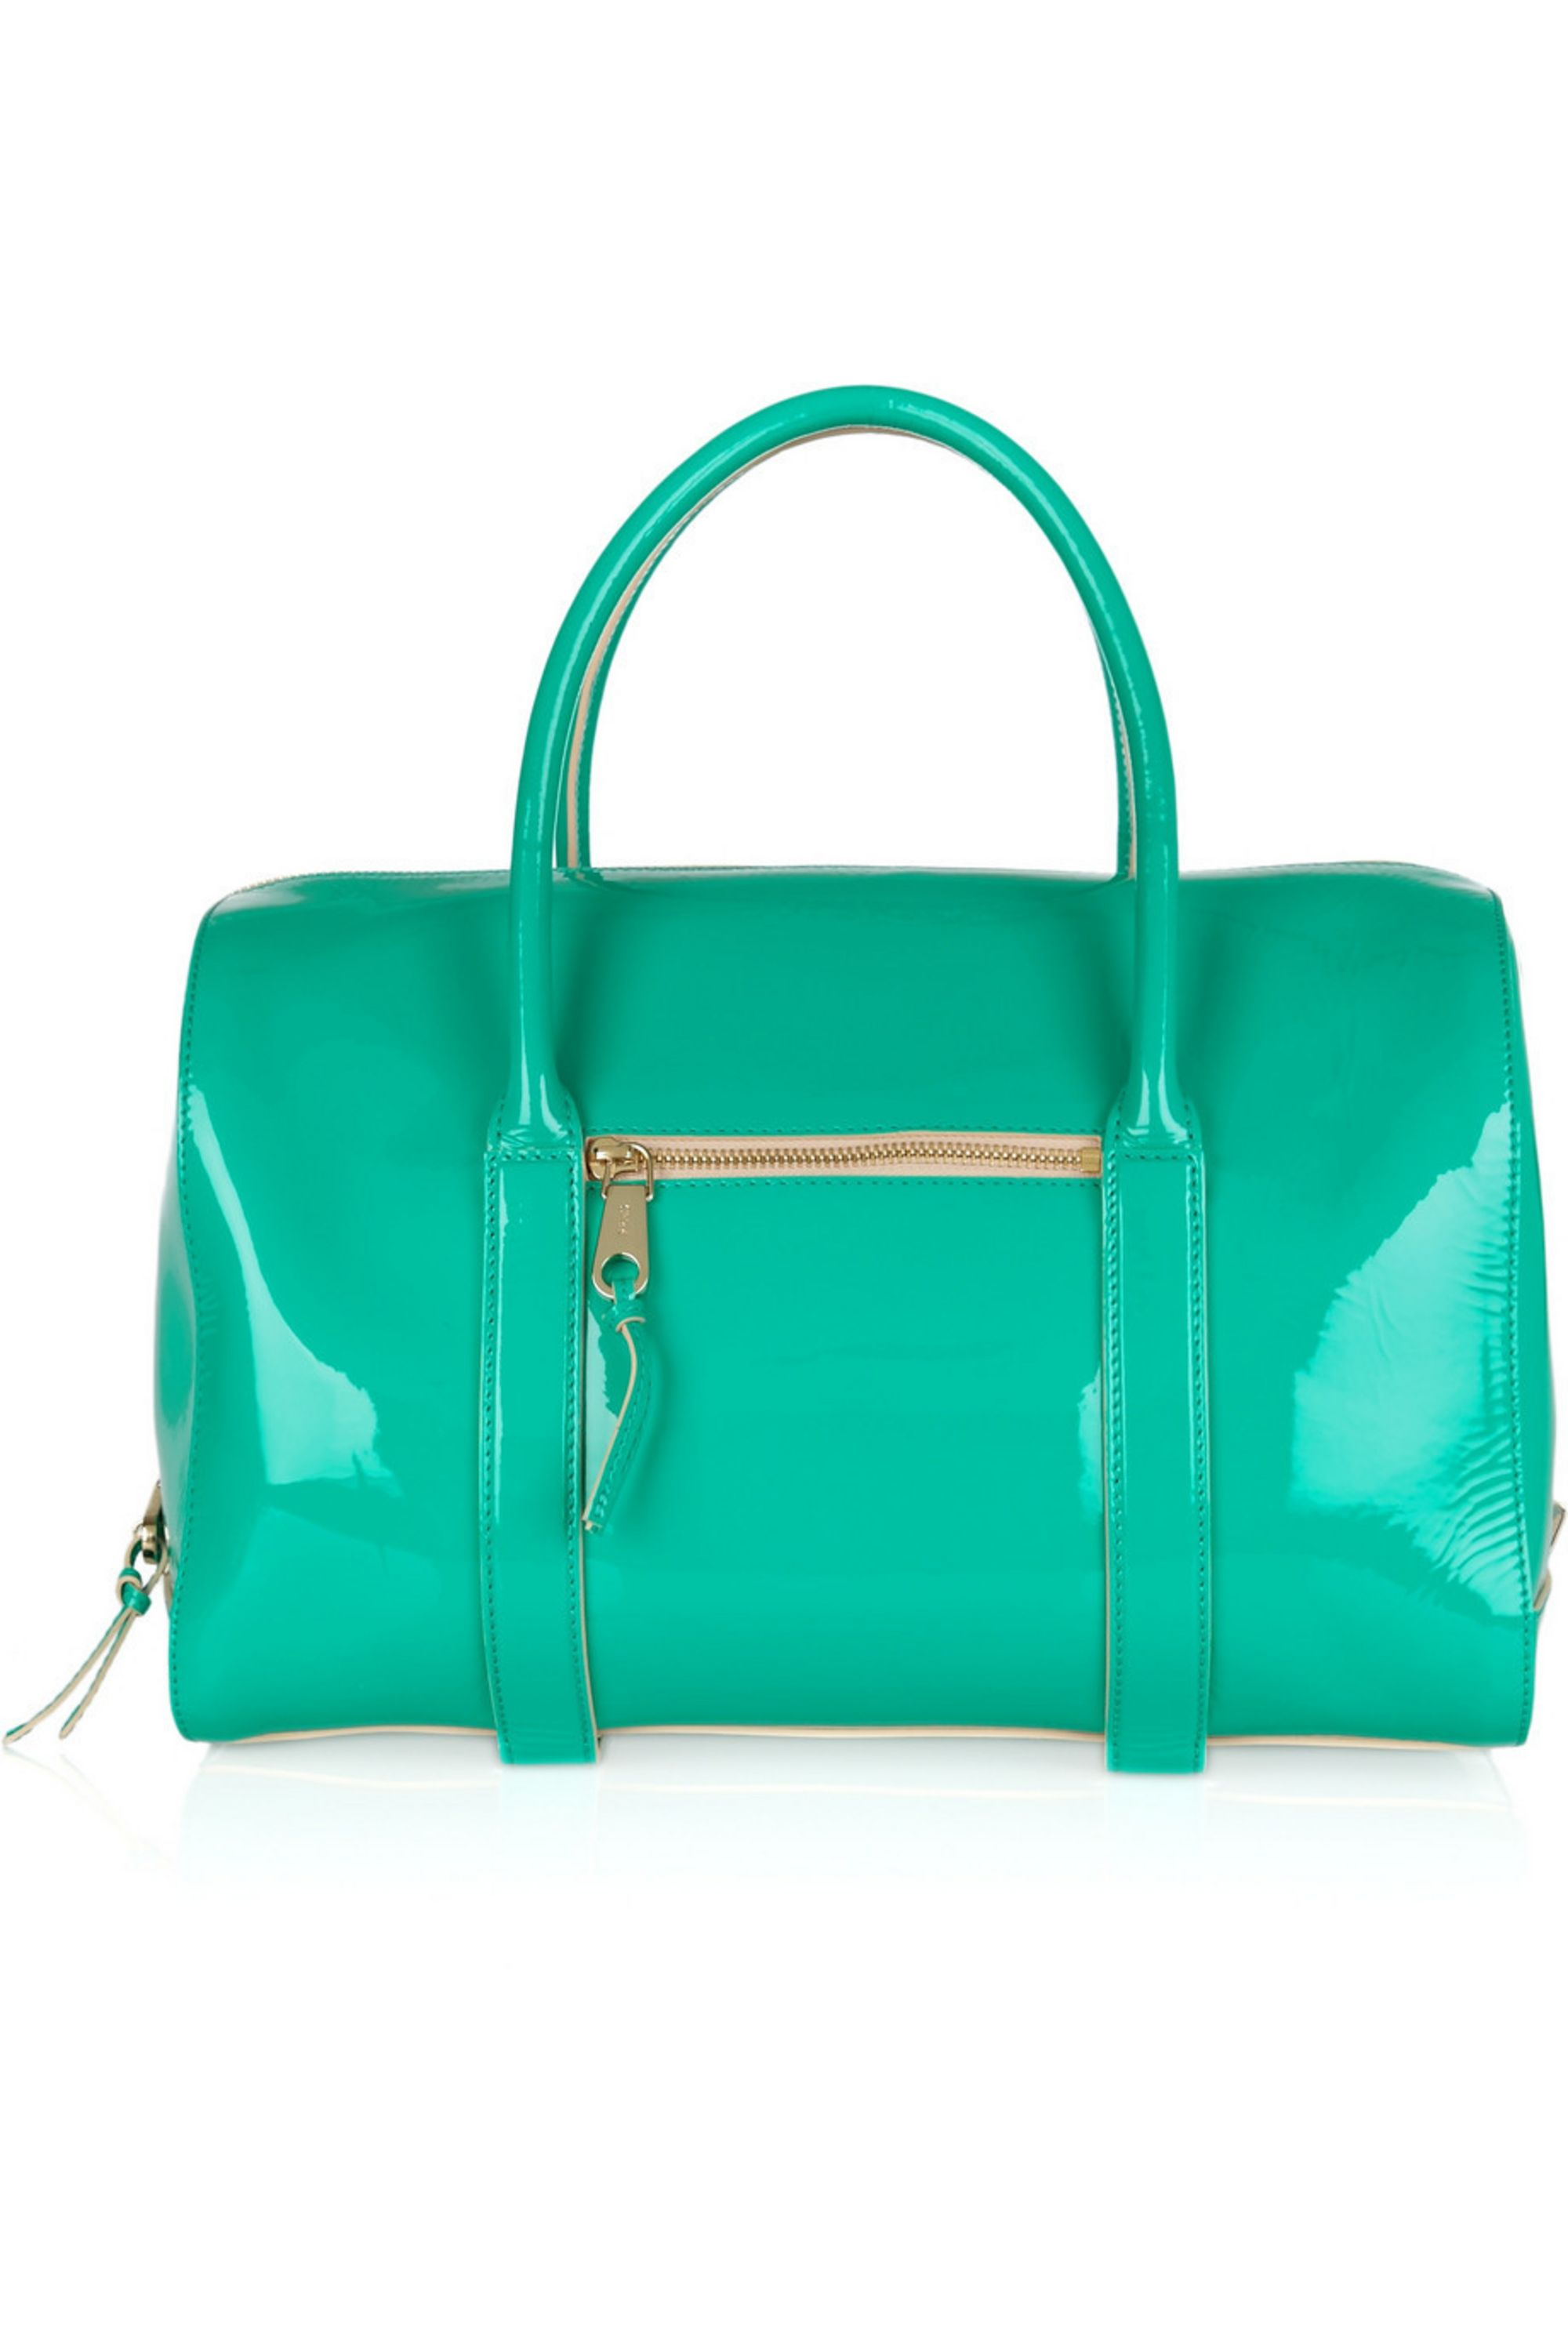 Chloé Madeleine patent-leather duffle bag